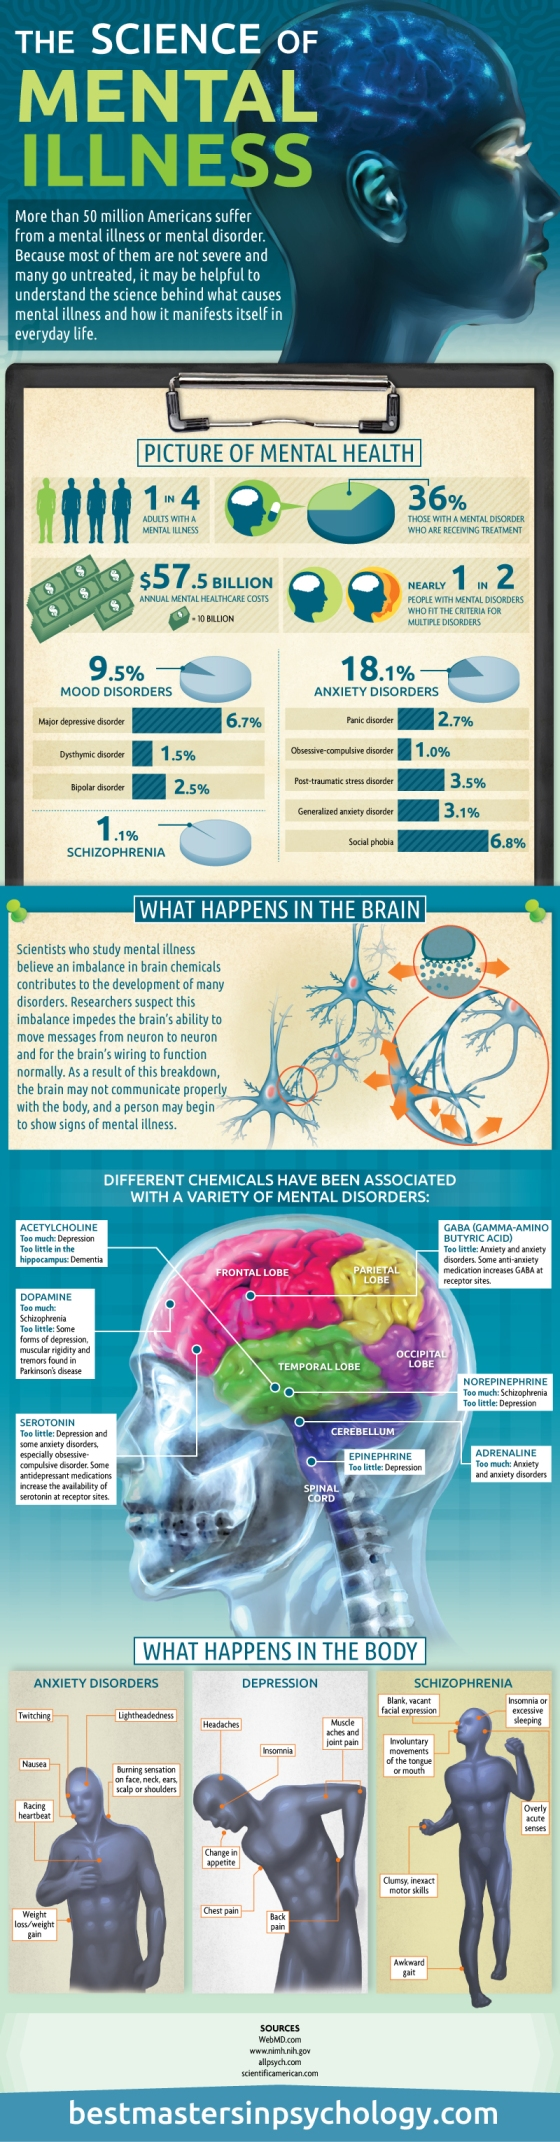 Infographic:The Science of Mental Illness